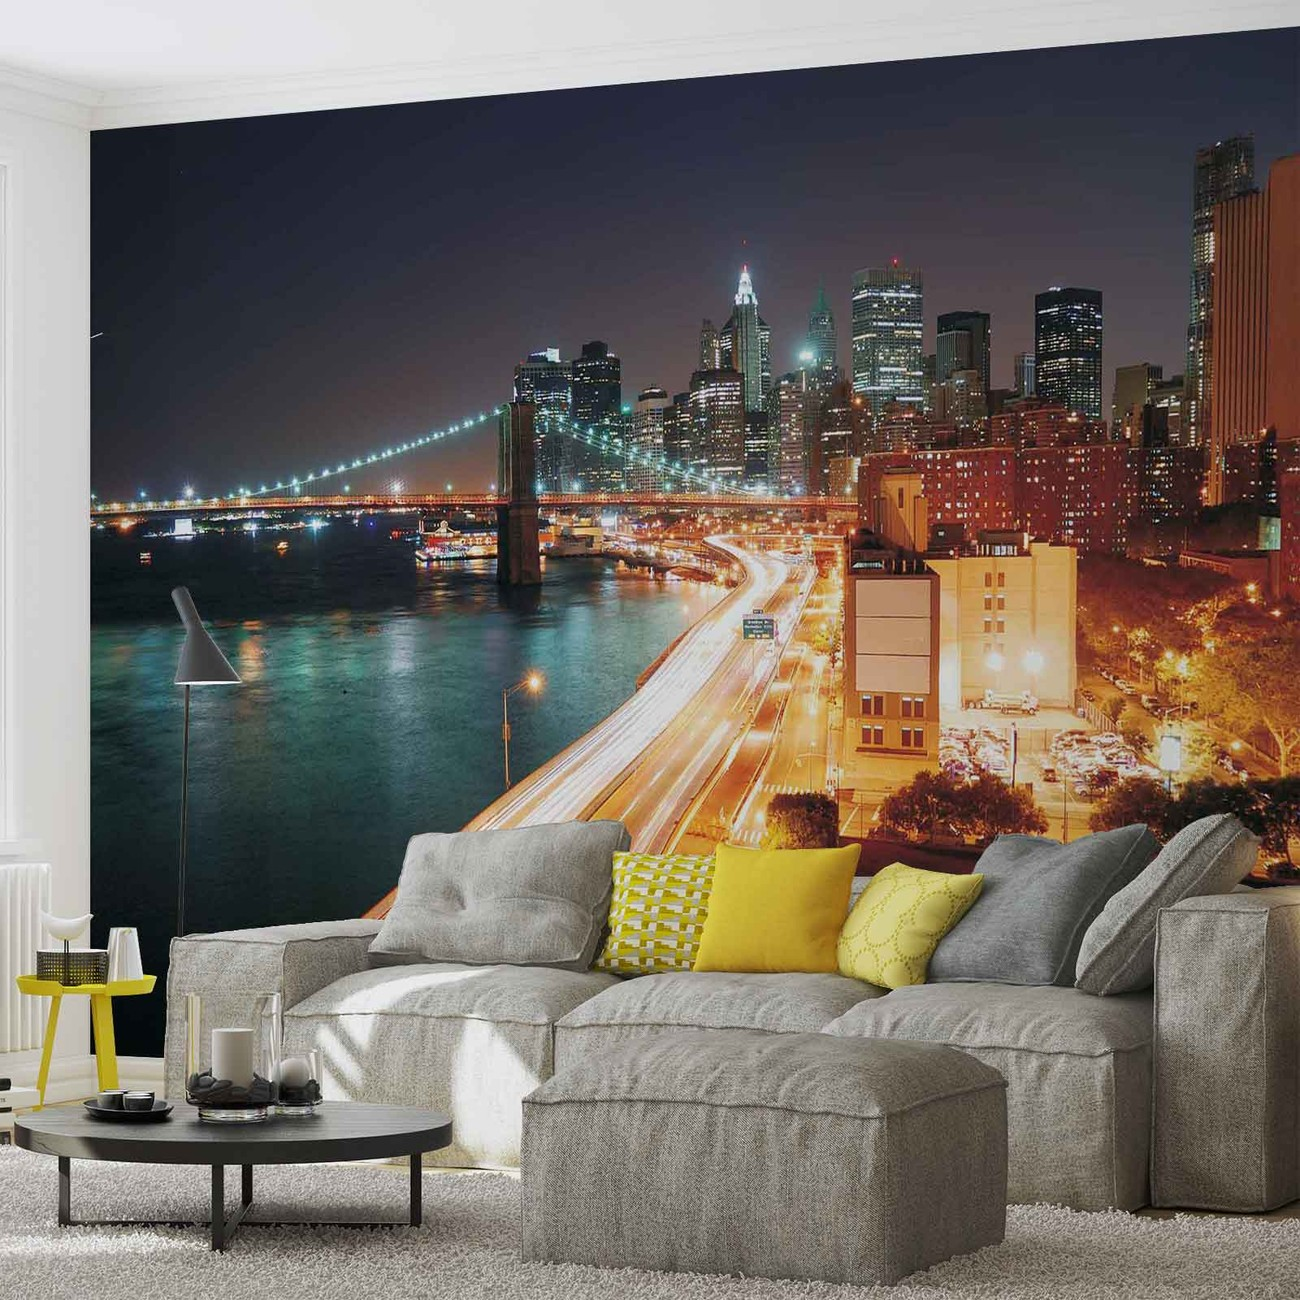 new york city skyline night wall paper mural buy at. Black Bedroom Furniture Sets. Home Design Ideas